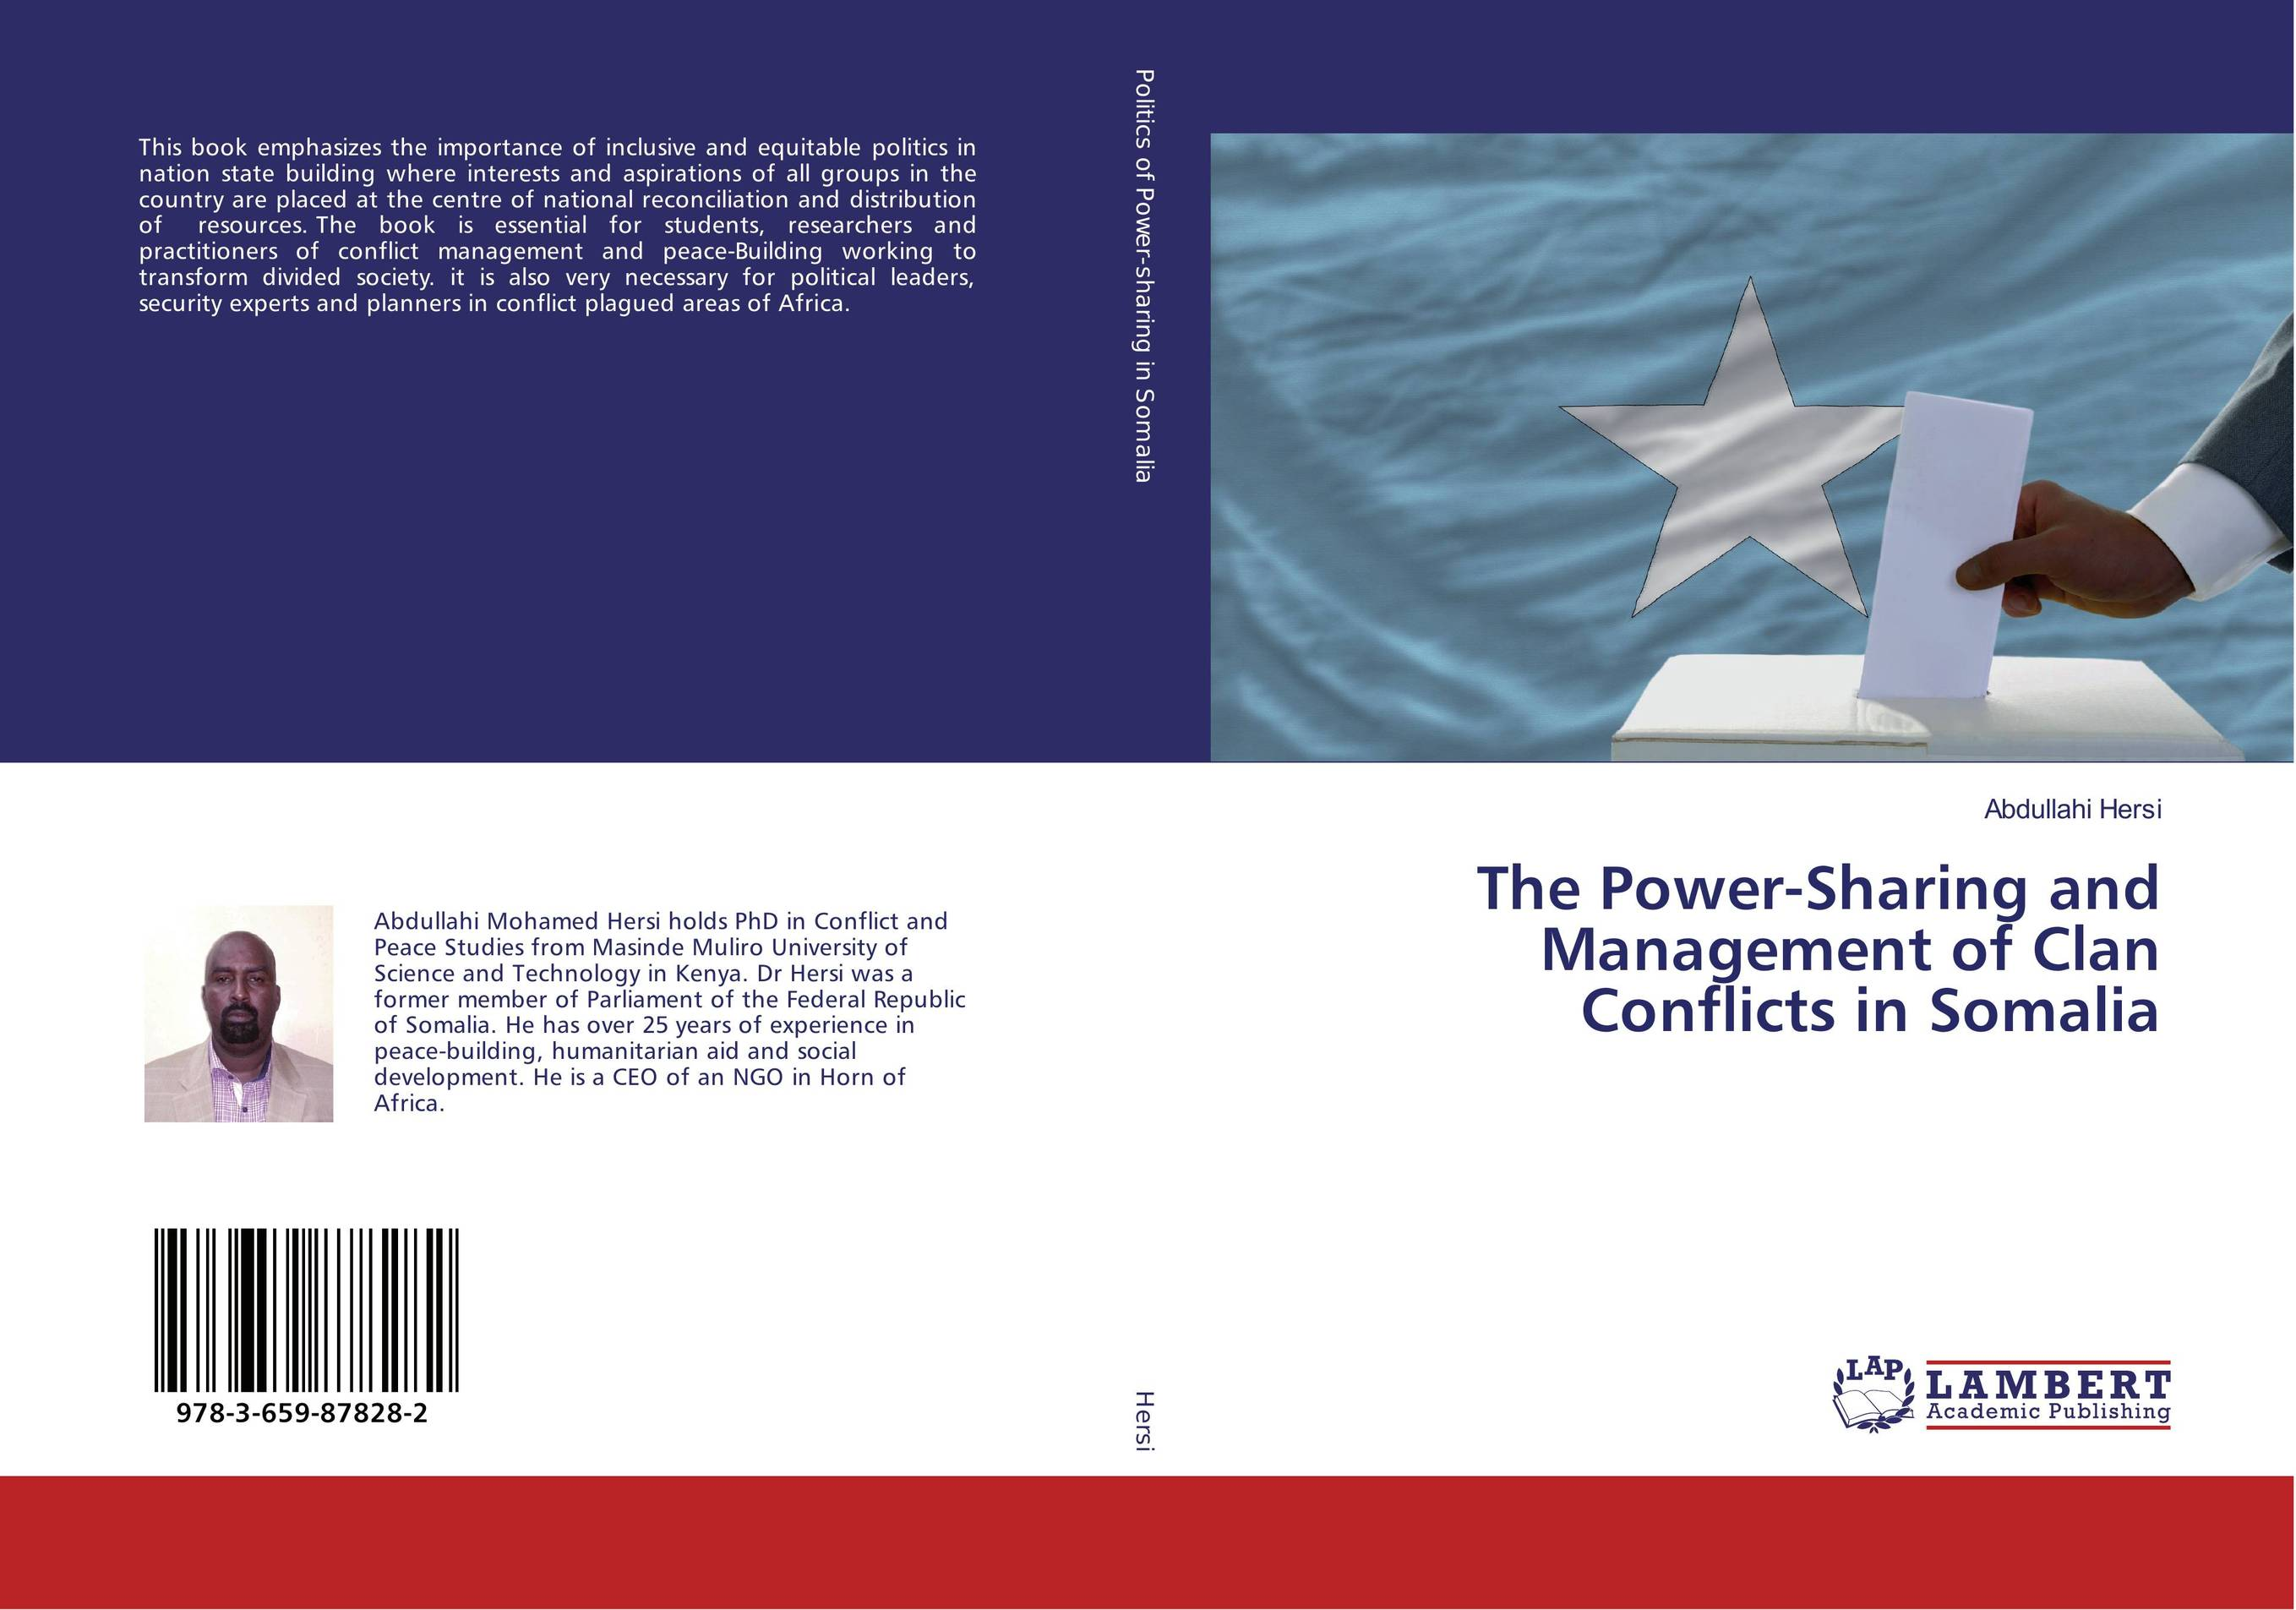 The Power-Sharing and Management of Clan Conflicts in Somalia conflicts in forest resources usage and management